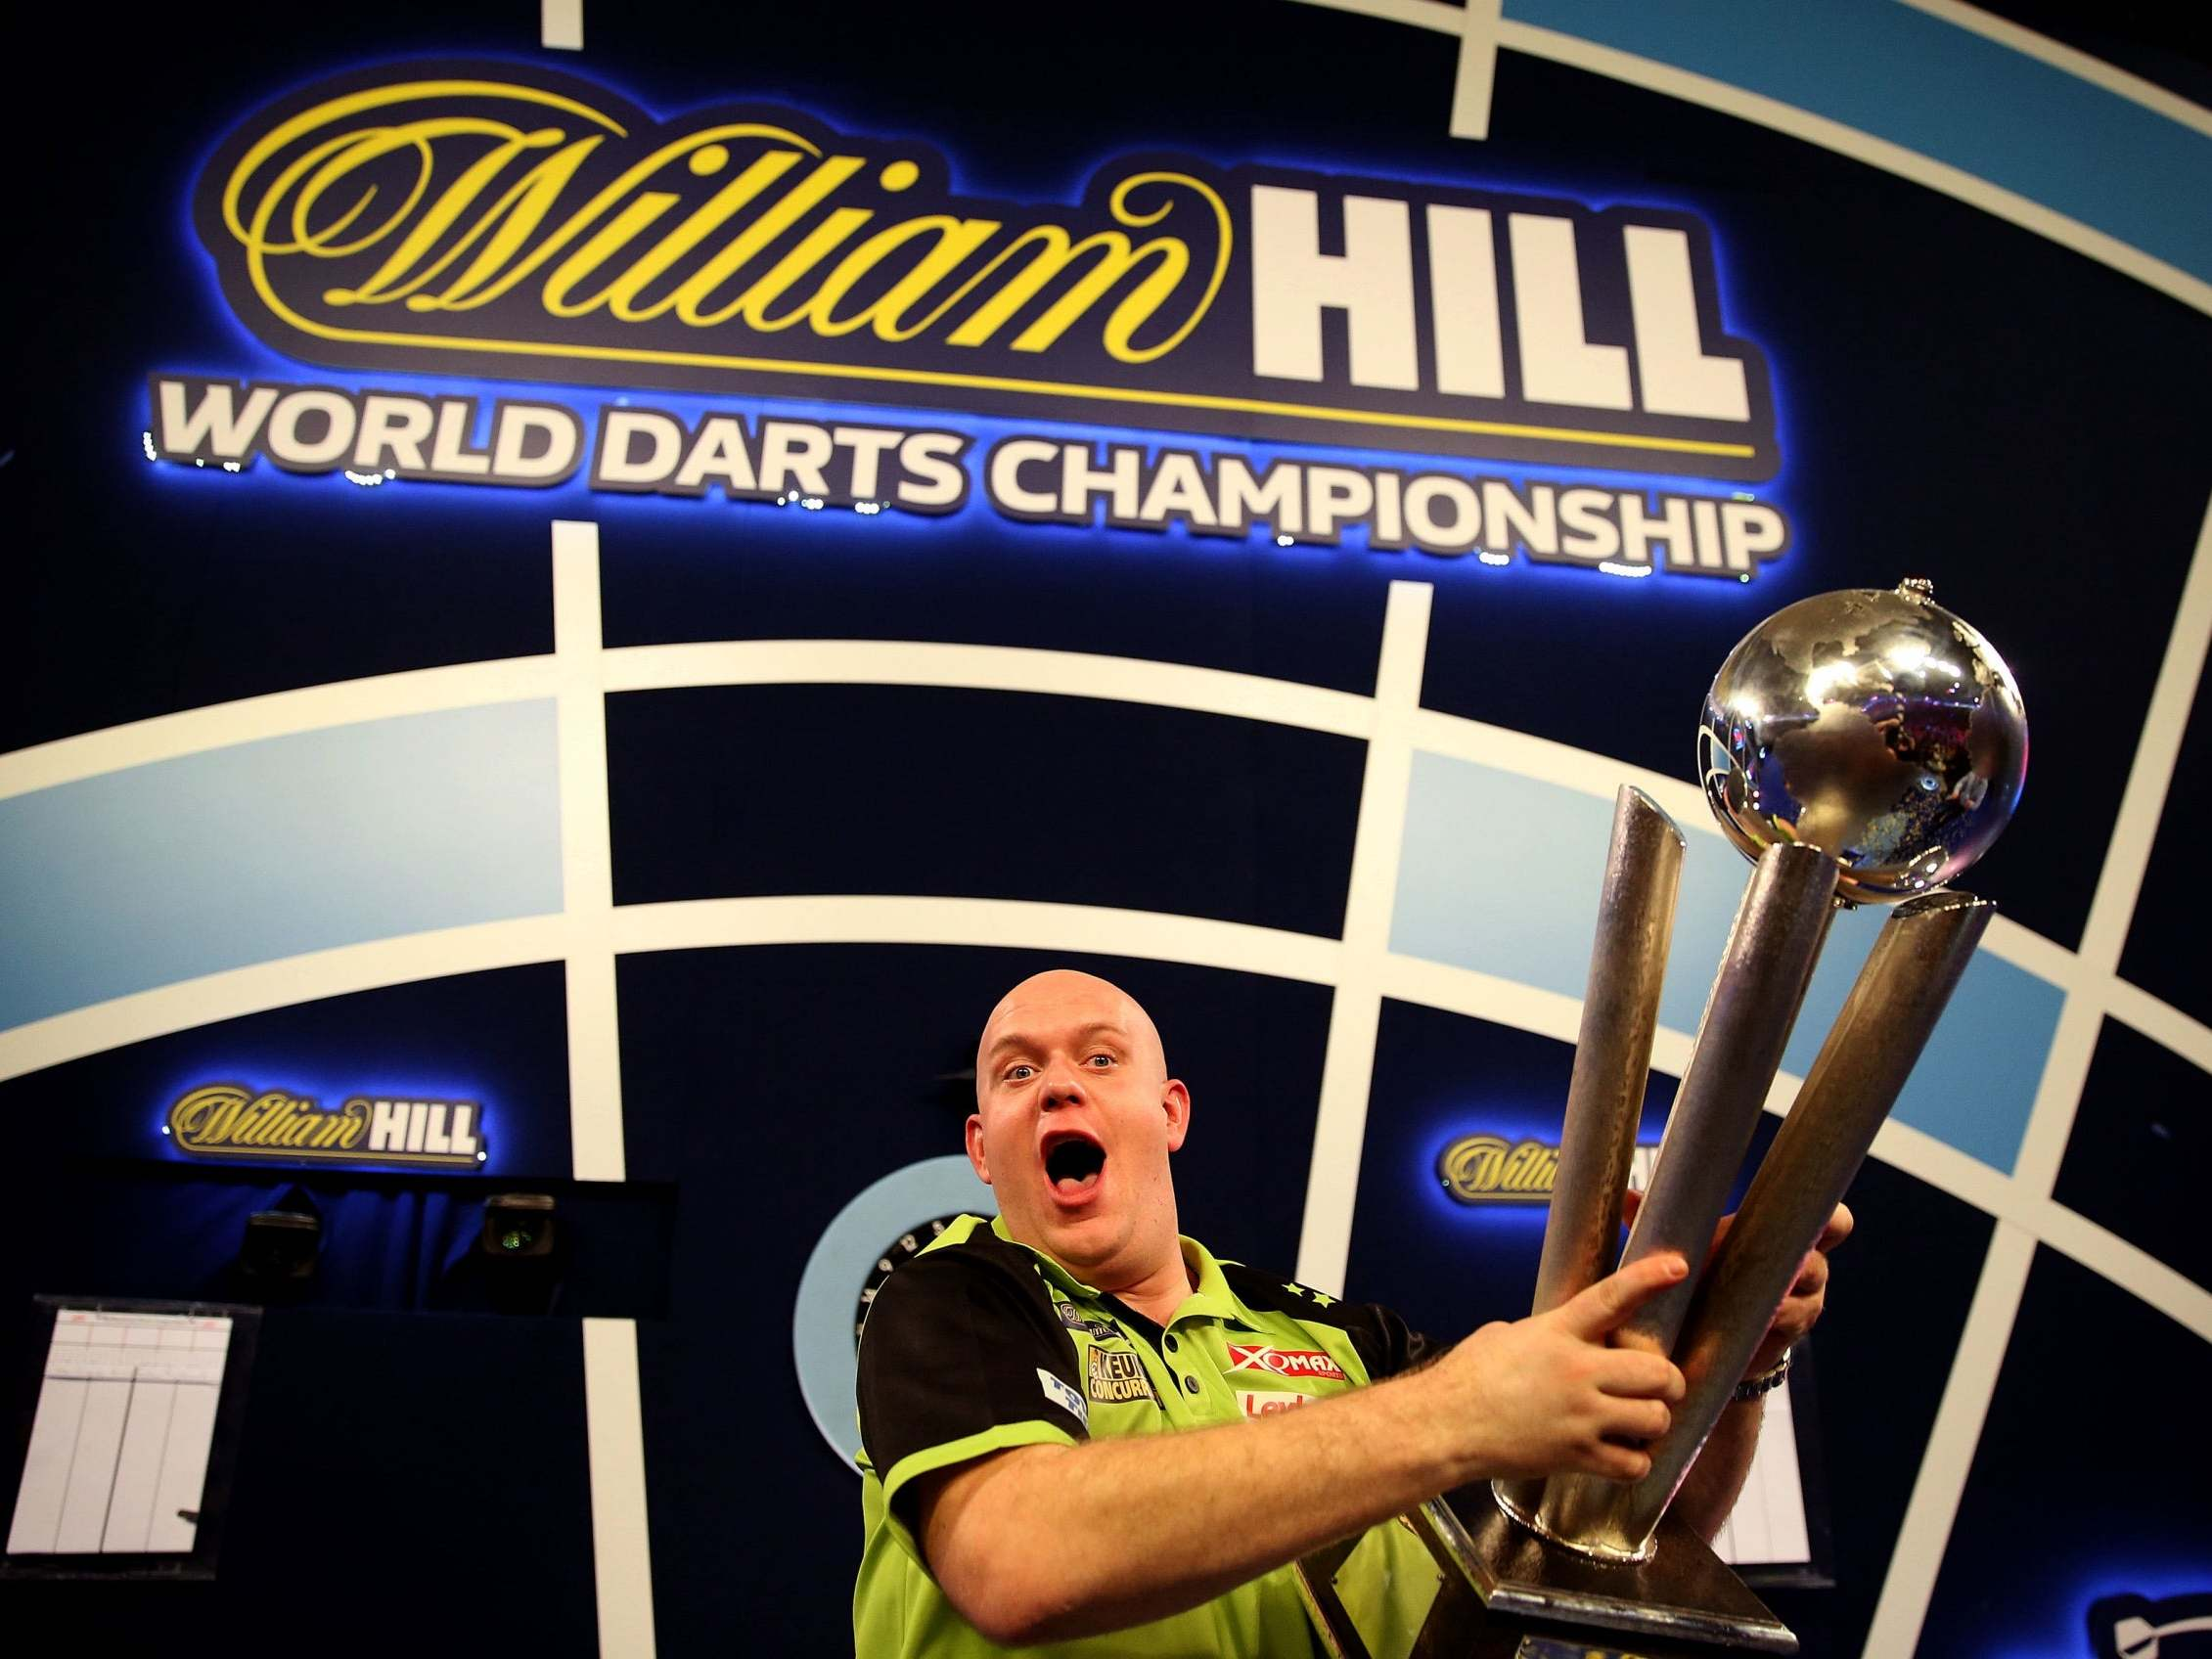 Darts World Championship: Order of play, schedule, when is it, what time does is start, draw and prize money